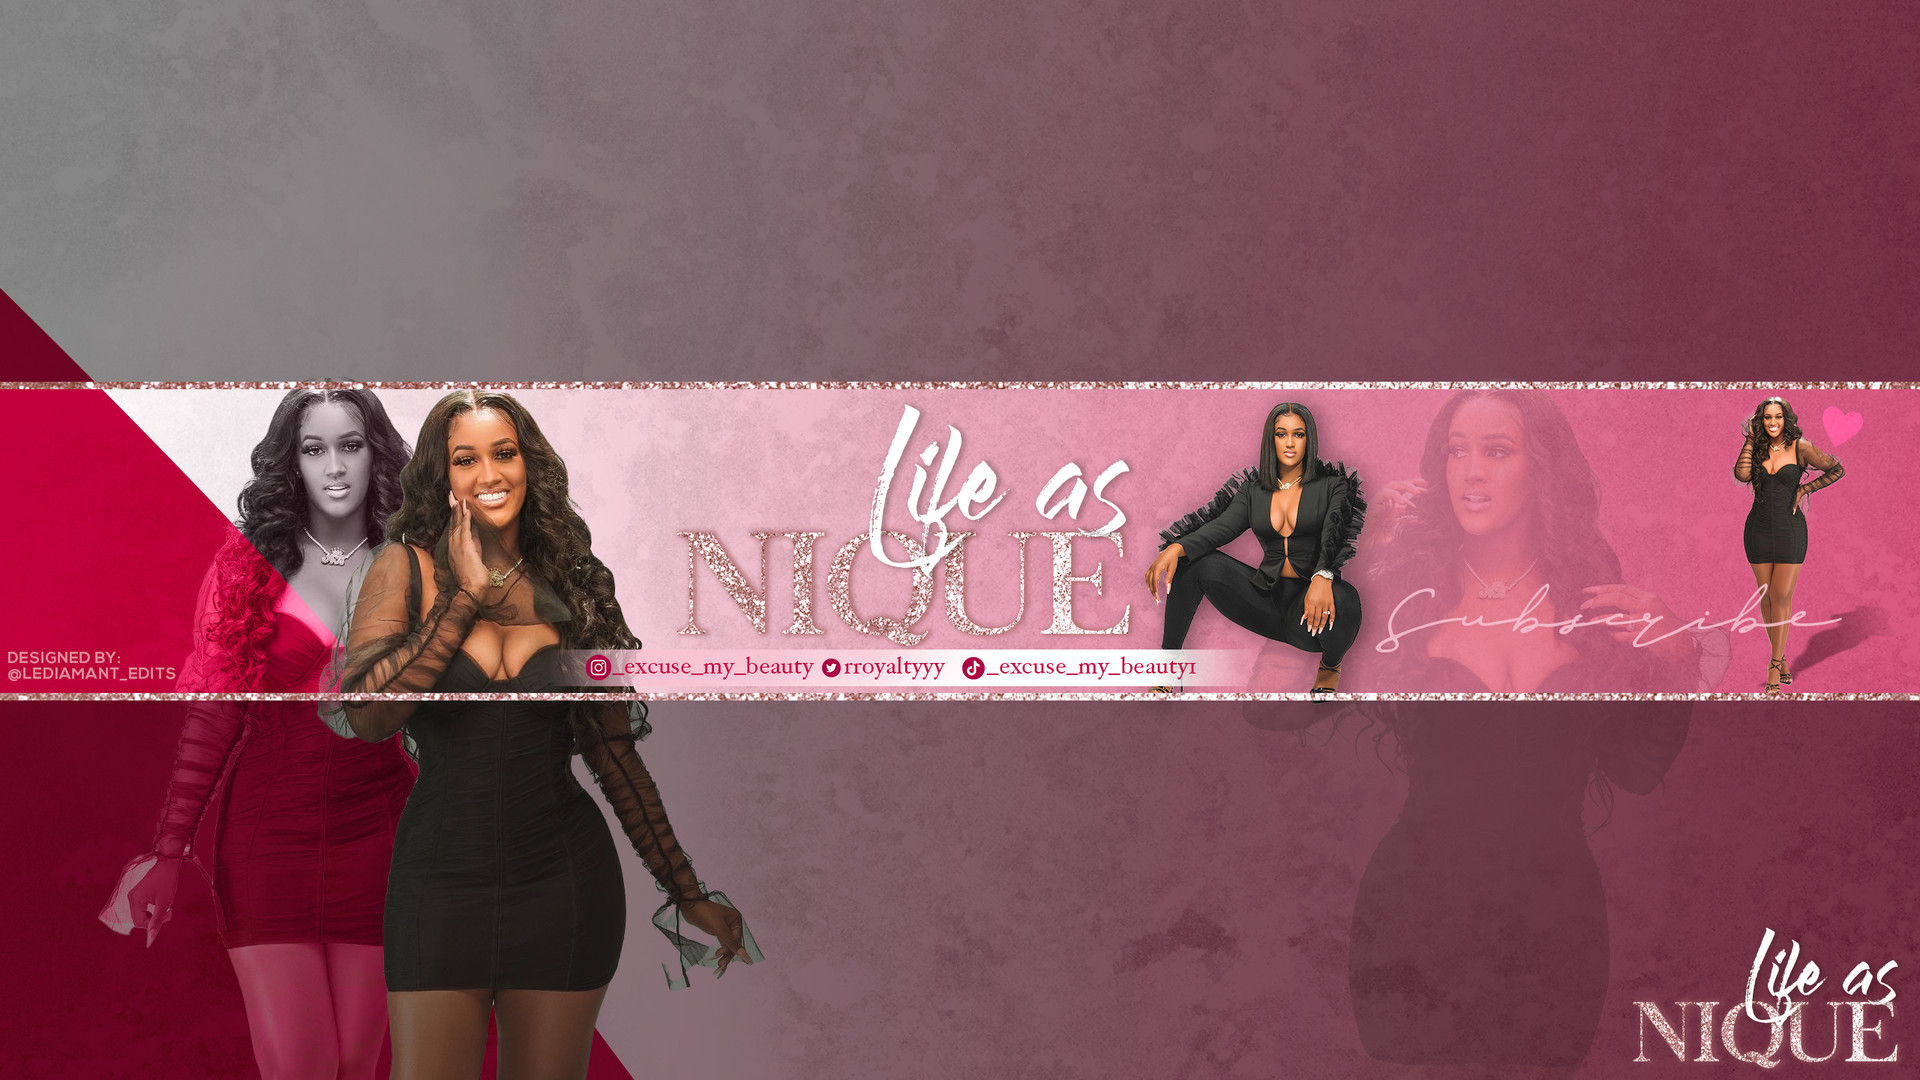 Life-As-Nique-Official-Banner.jpg